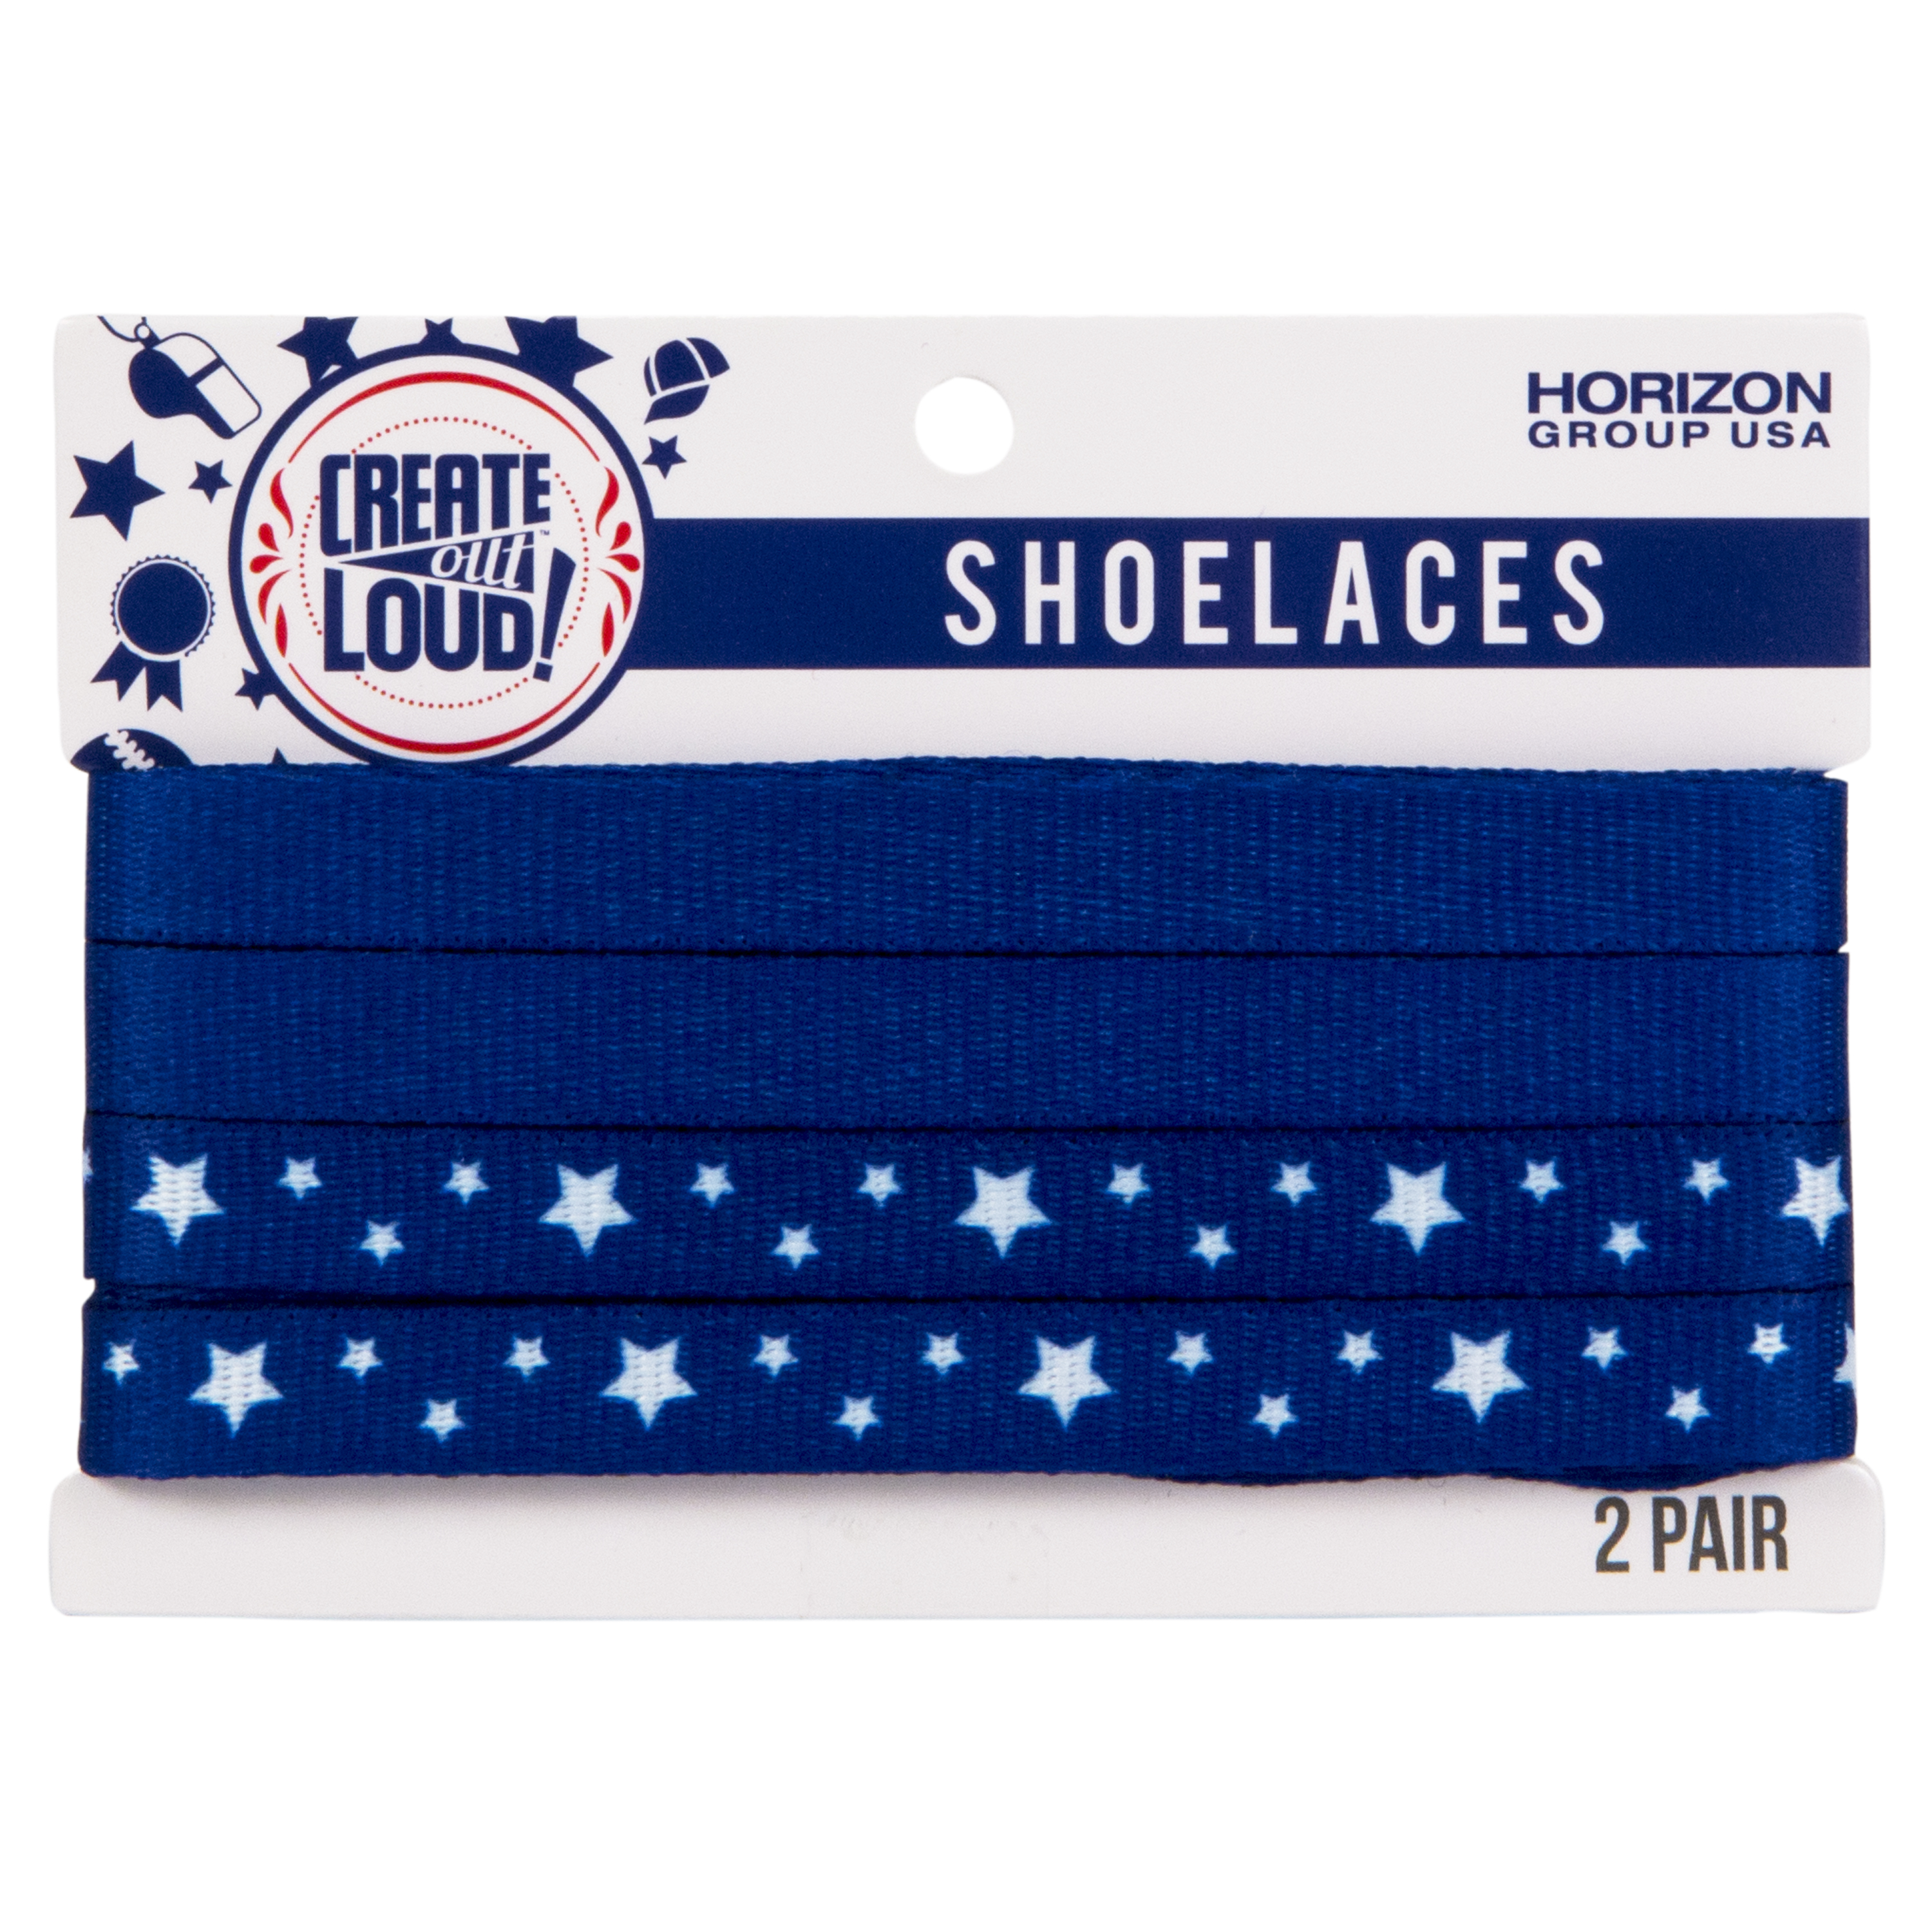 Image of Create Out Loud Shoelace Set in Blue & Blue/White Stars